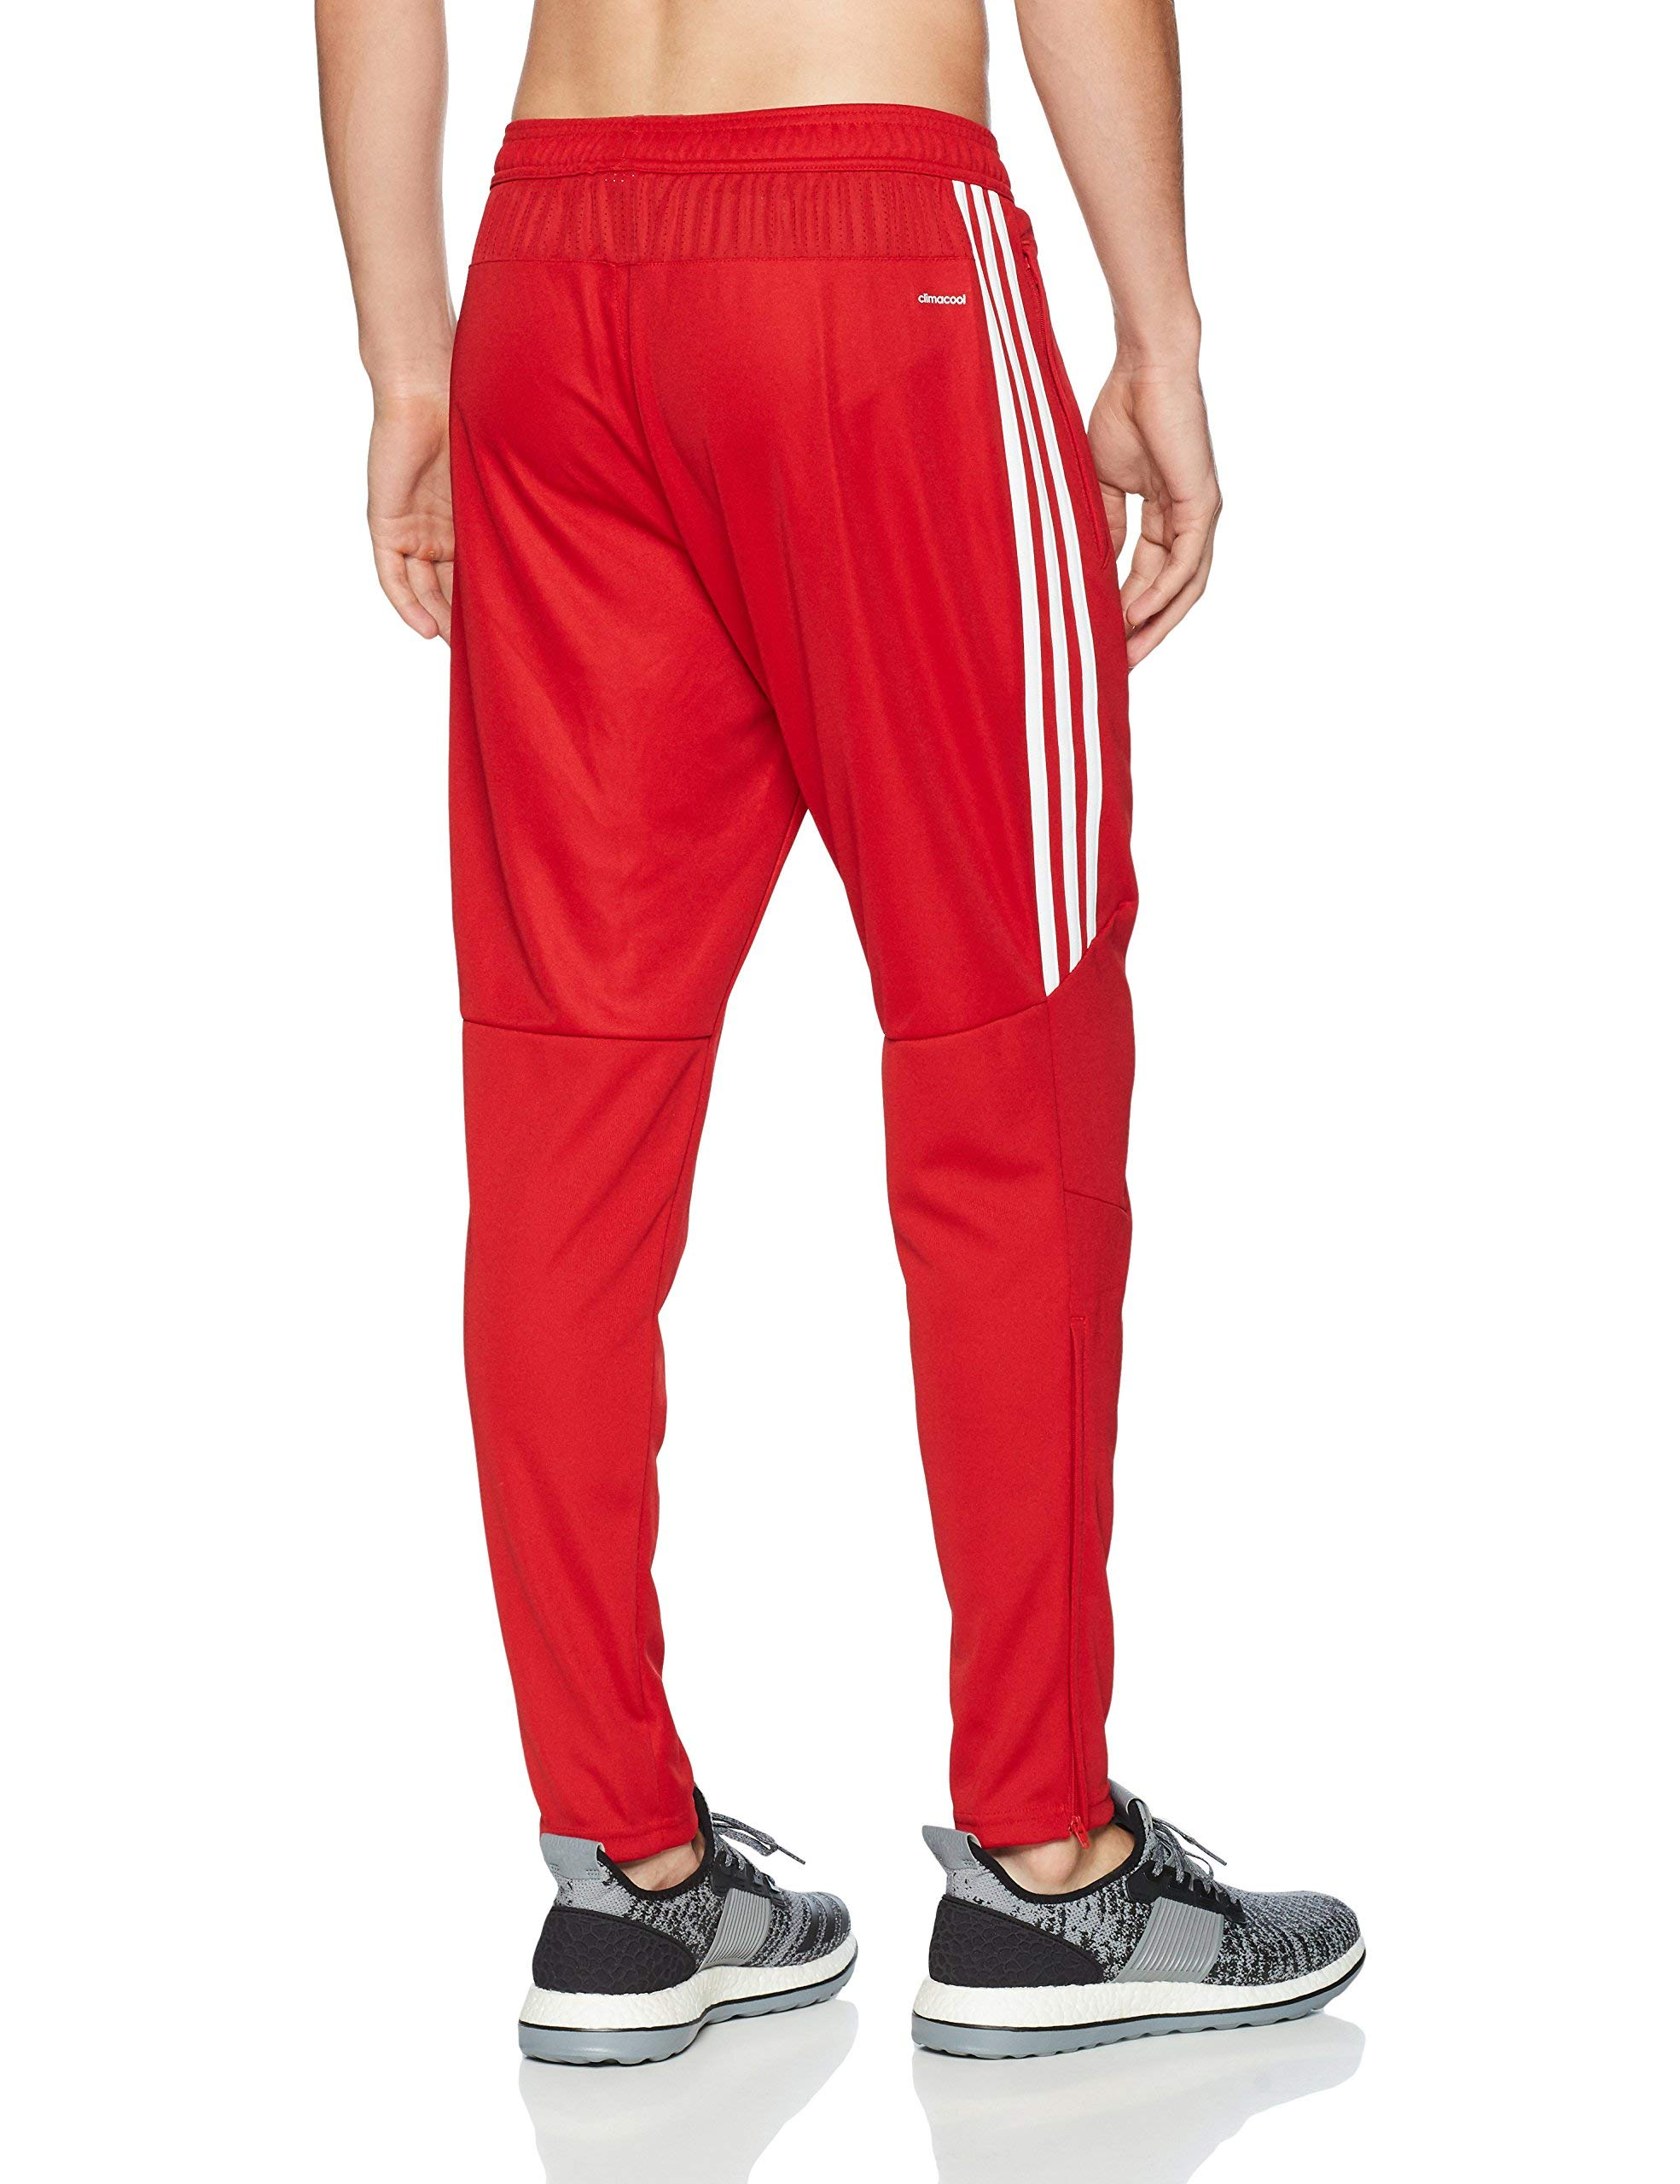 adidas Men's Soccer Tiro 17 Pants, Small, Power Red/White by adidas (Image #2)